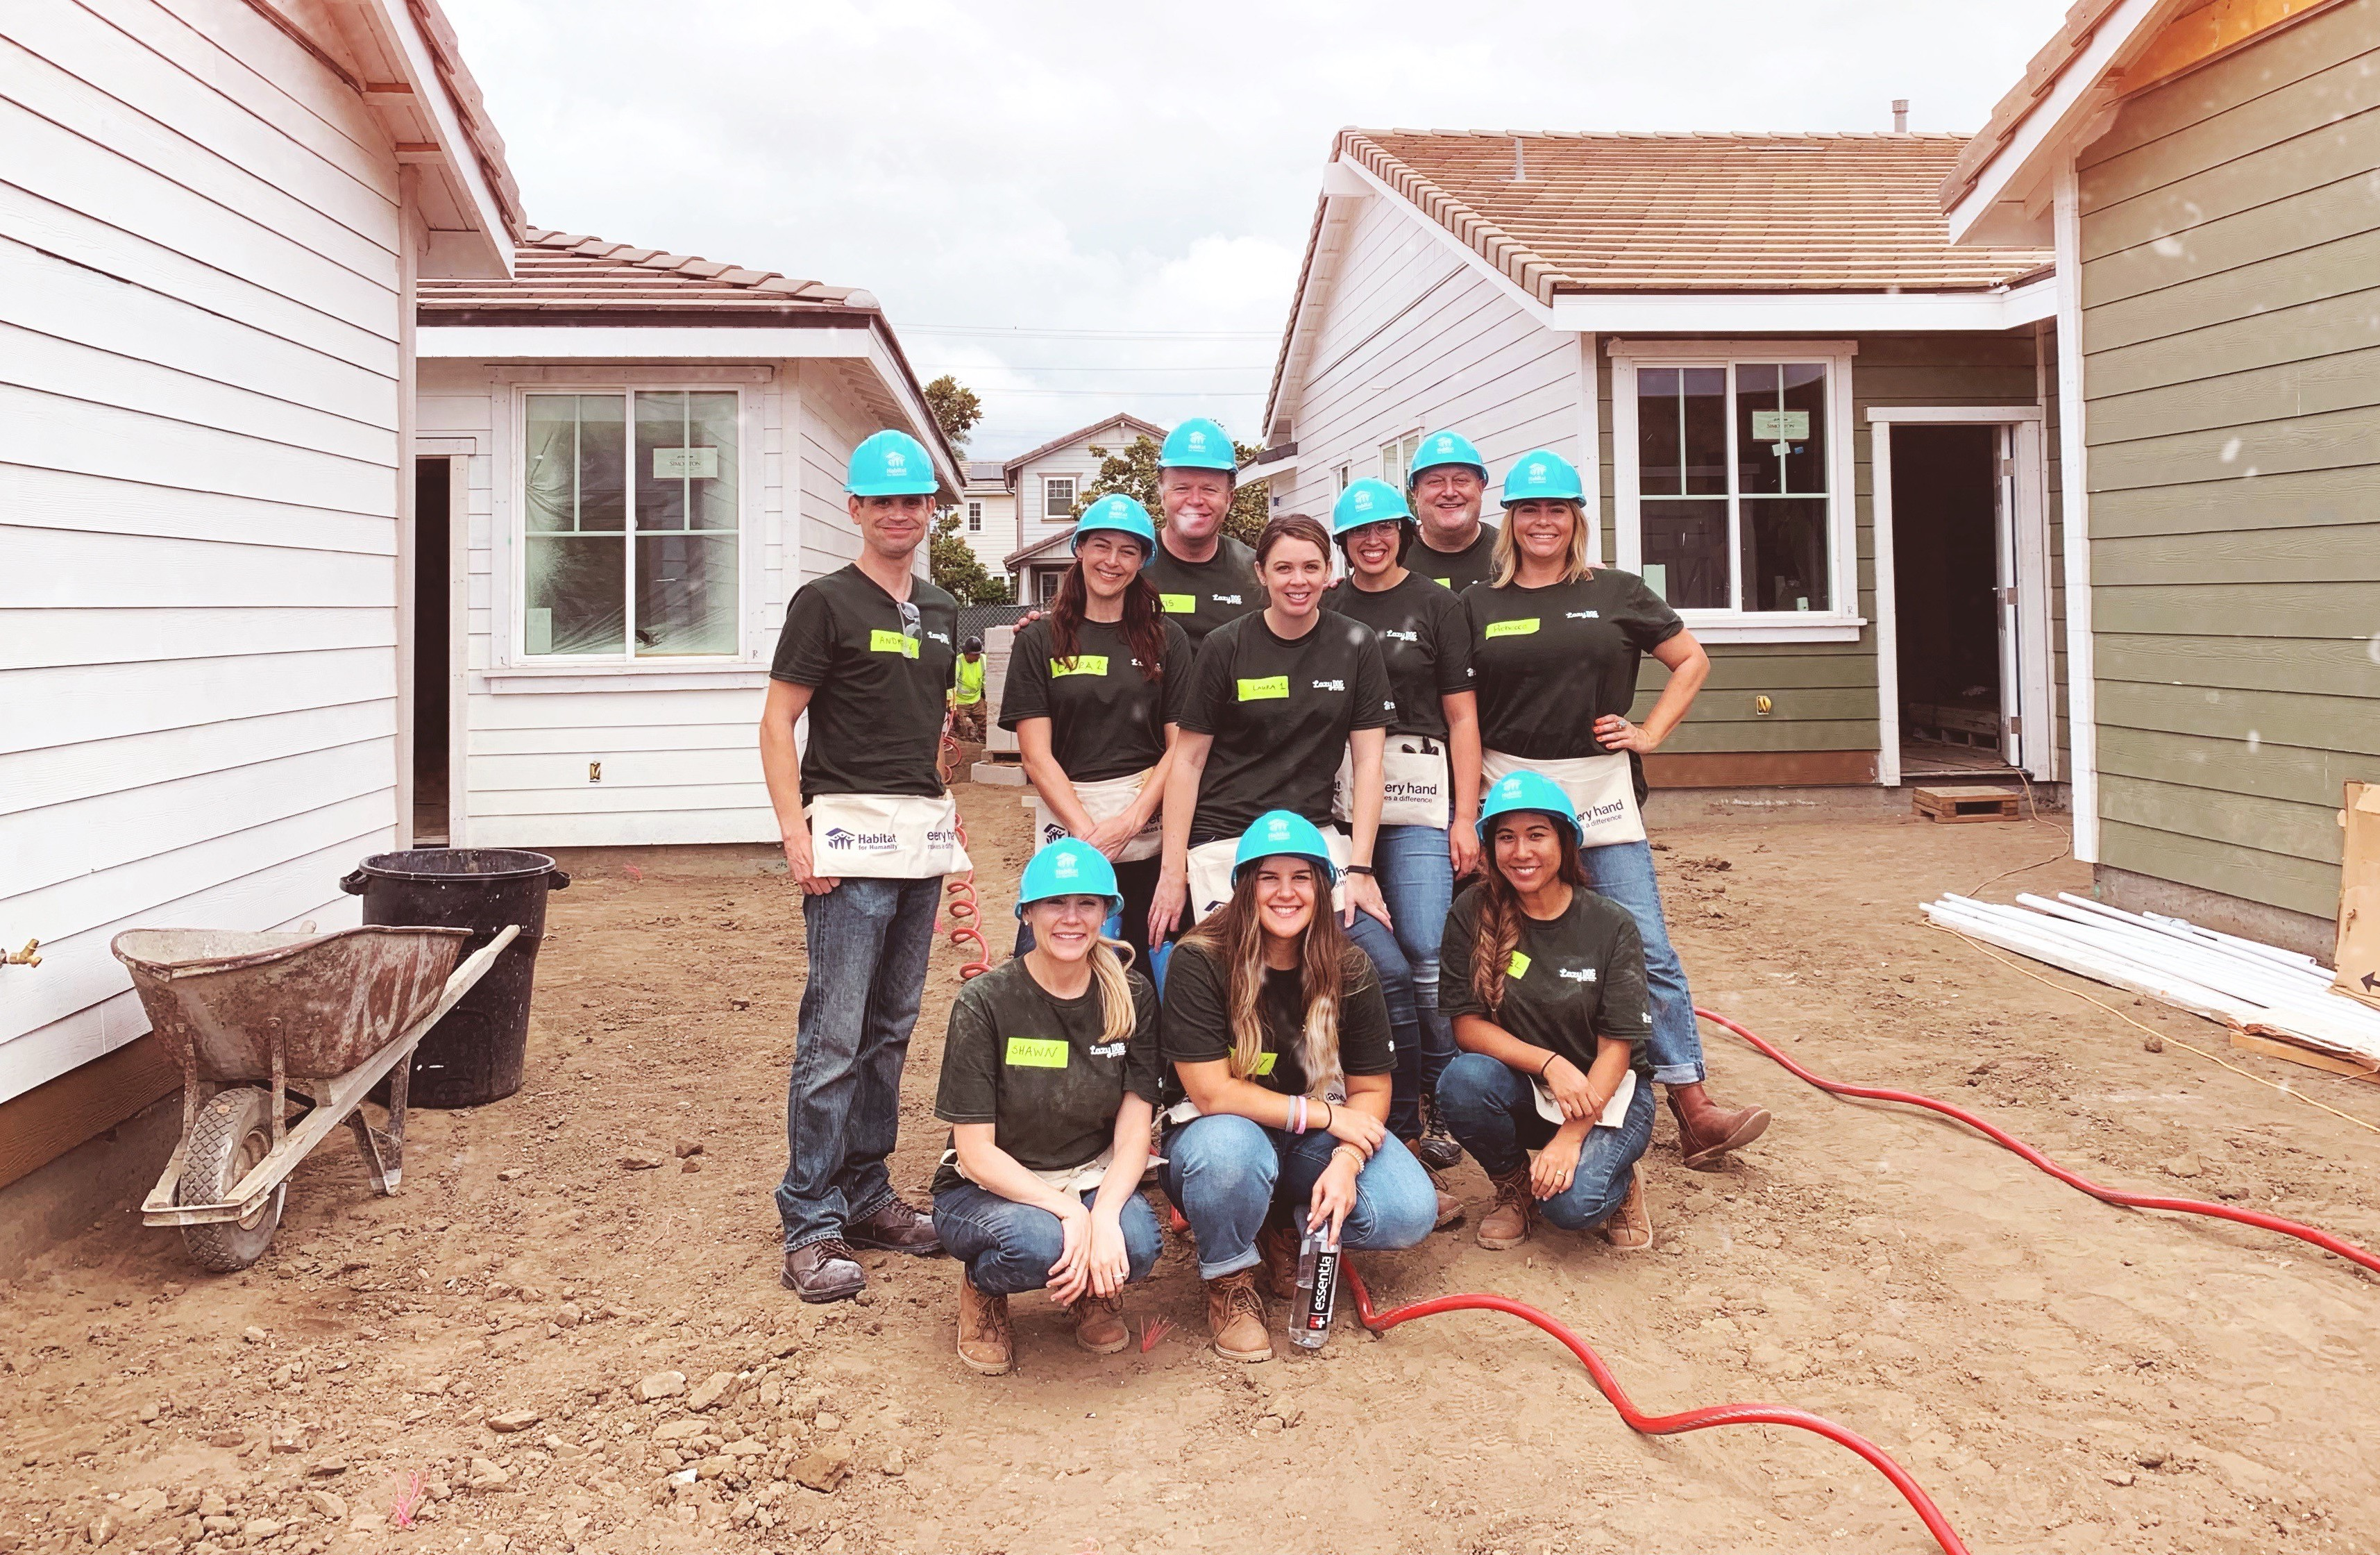 Team Lazy Dog volunteering at a Habitat for Humanity Build